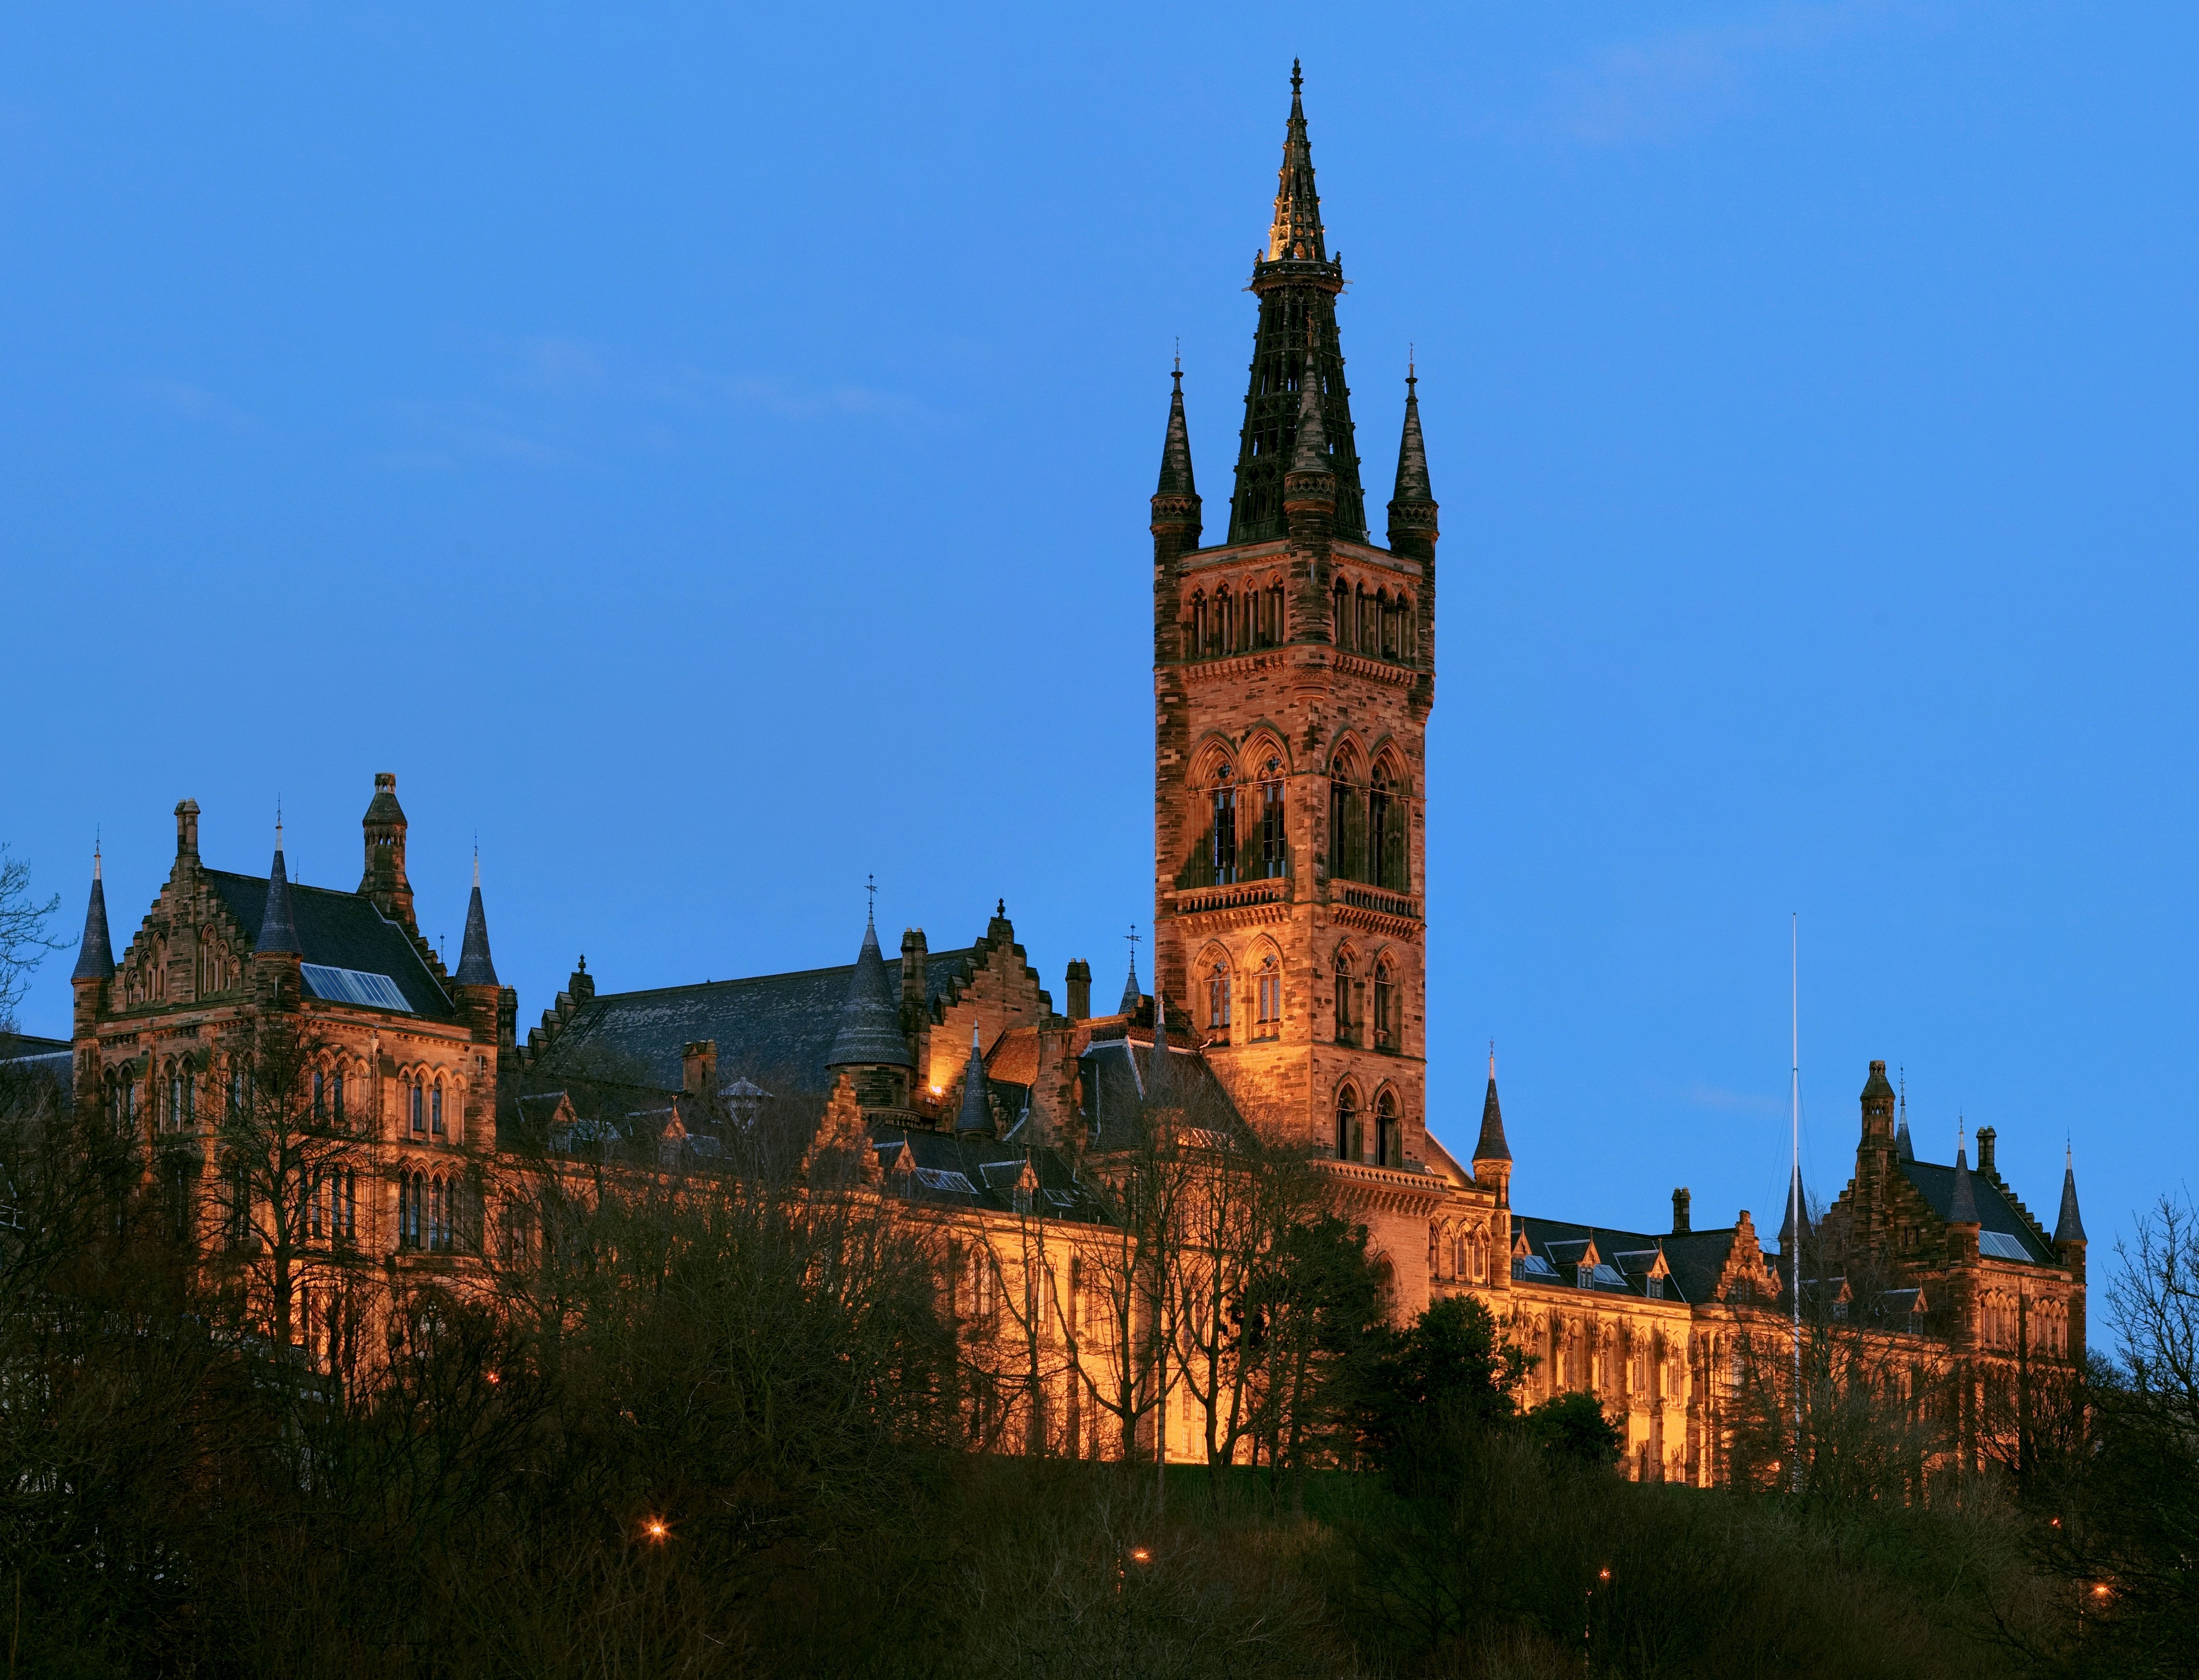 An image of Glasgow university at night, one of the reasons why Glasgow buy-to-let investments are a smart move